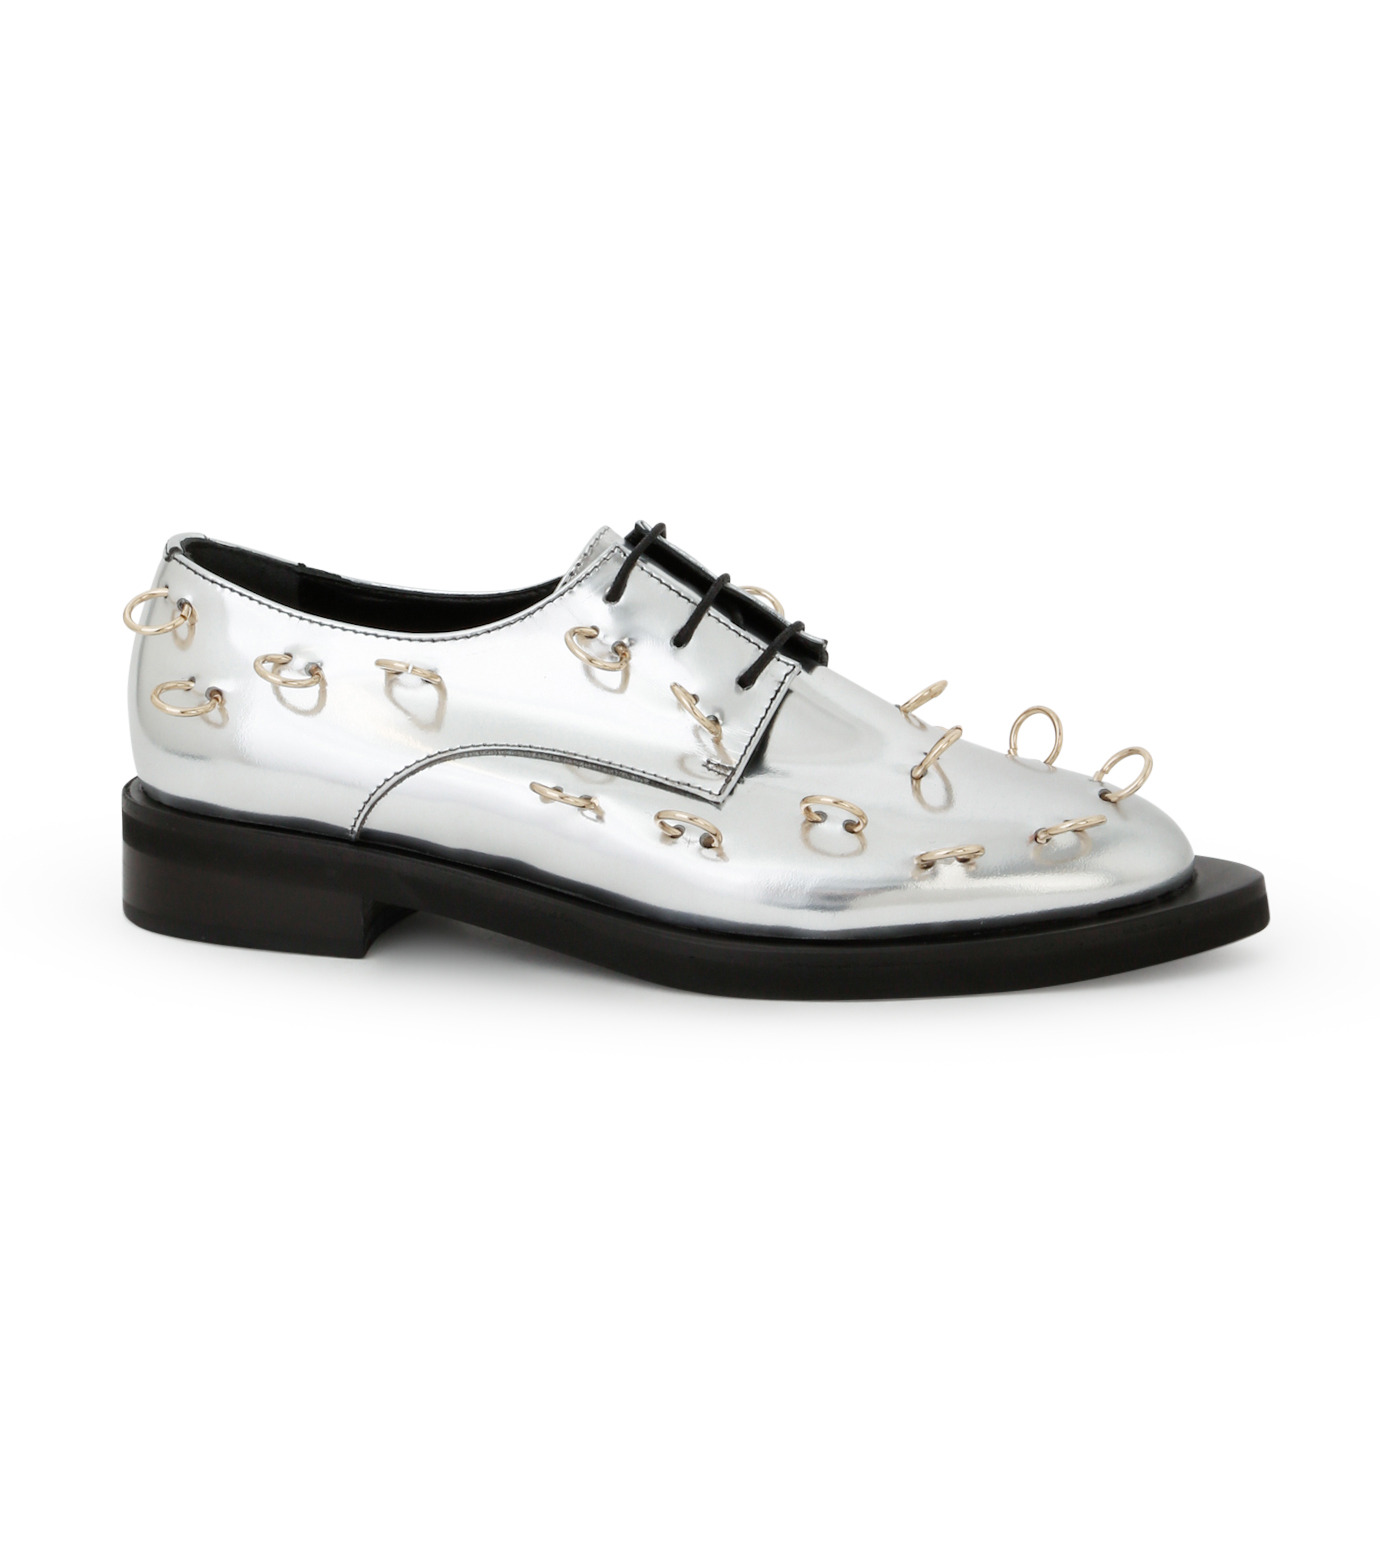 Coliac(コリアック)のRei Rings-SILVER(フラットシューズ/Flat shoes)-64CC124-1 拡大詳細画像1